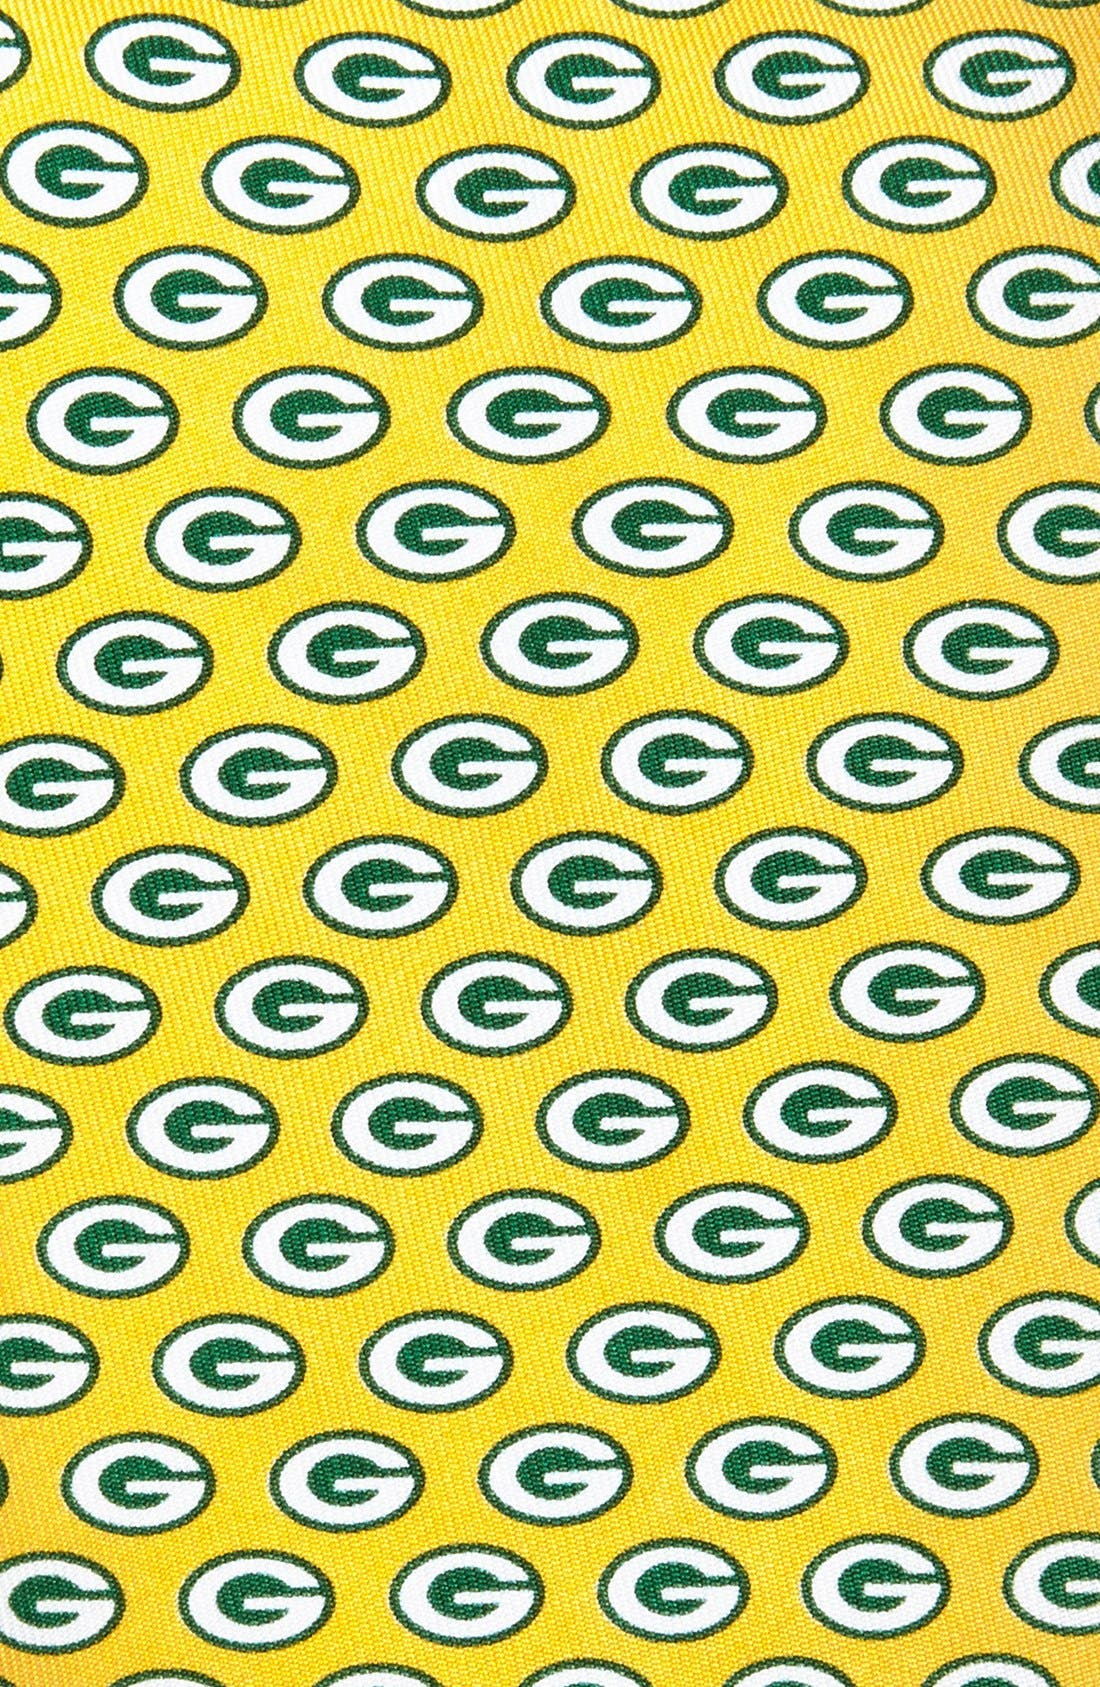 Green Bay Packers - NFL Woven Silk Tie,                             Alternate thumbnail 4, color,                             YELLOW